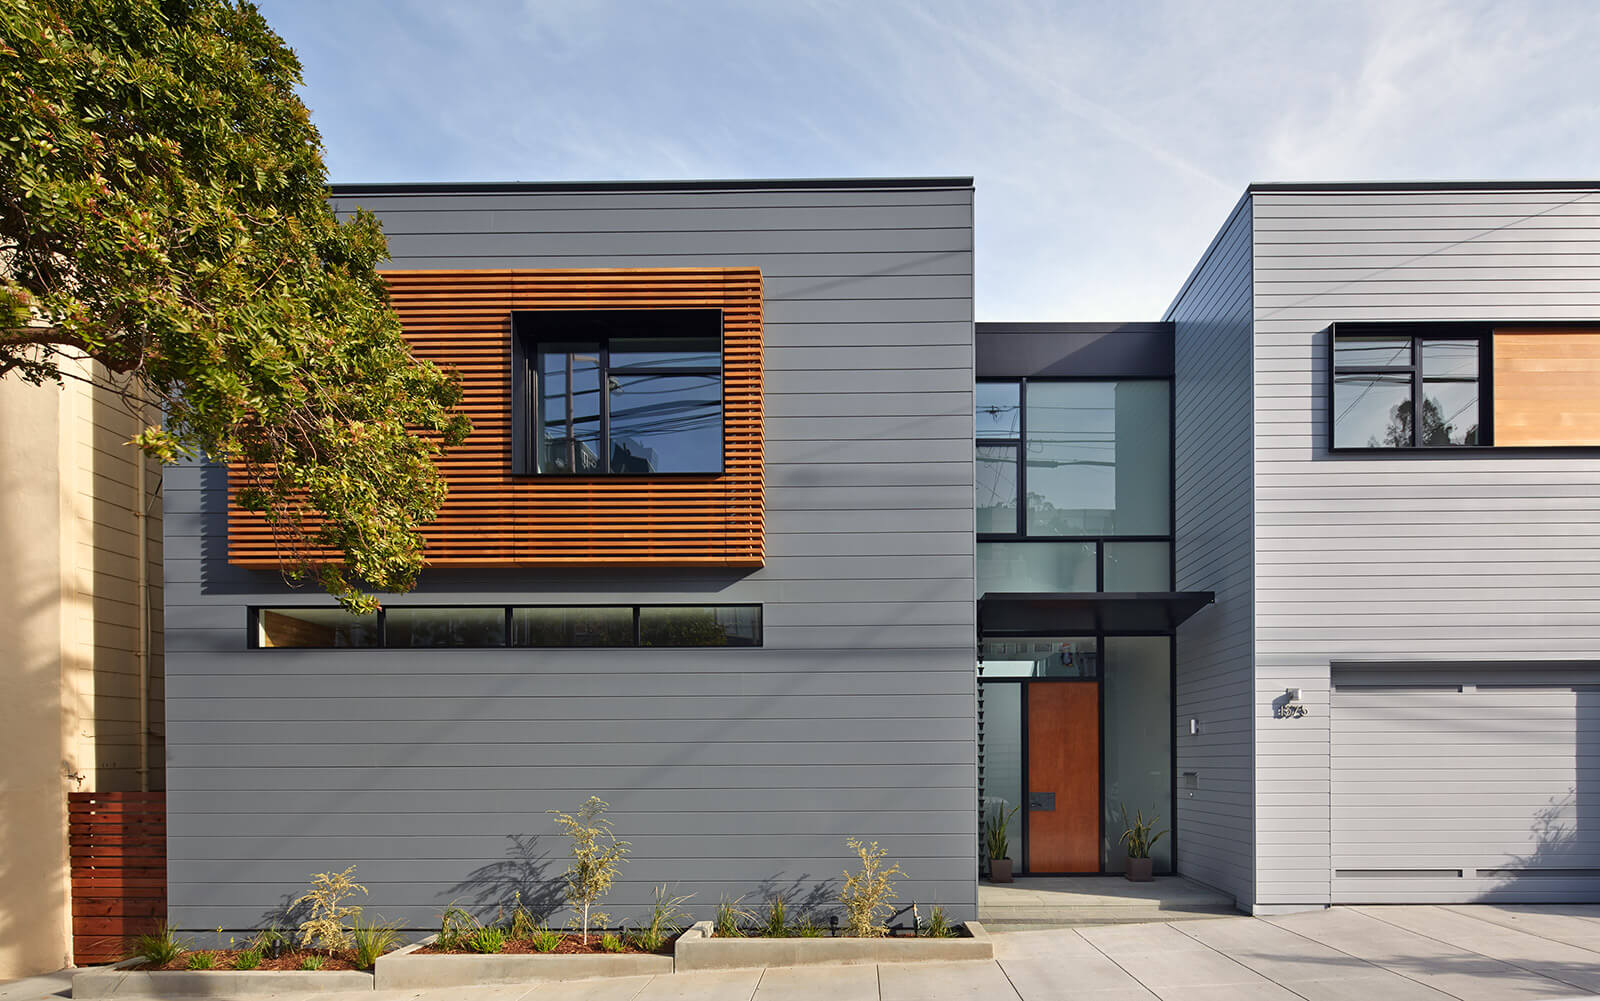 studio vara case study noe valley exterior entry